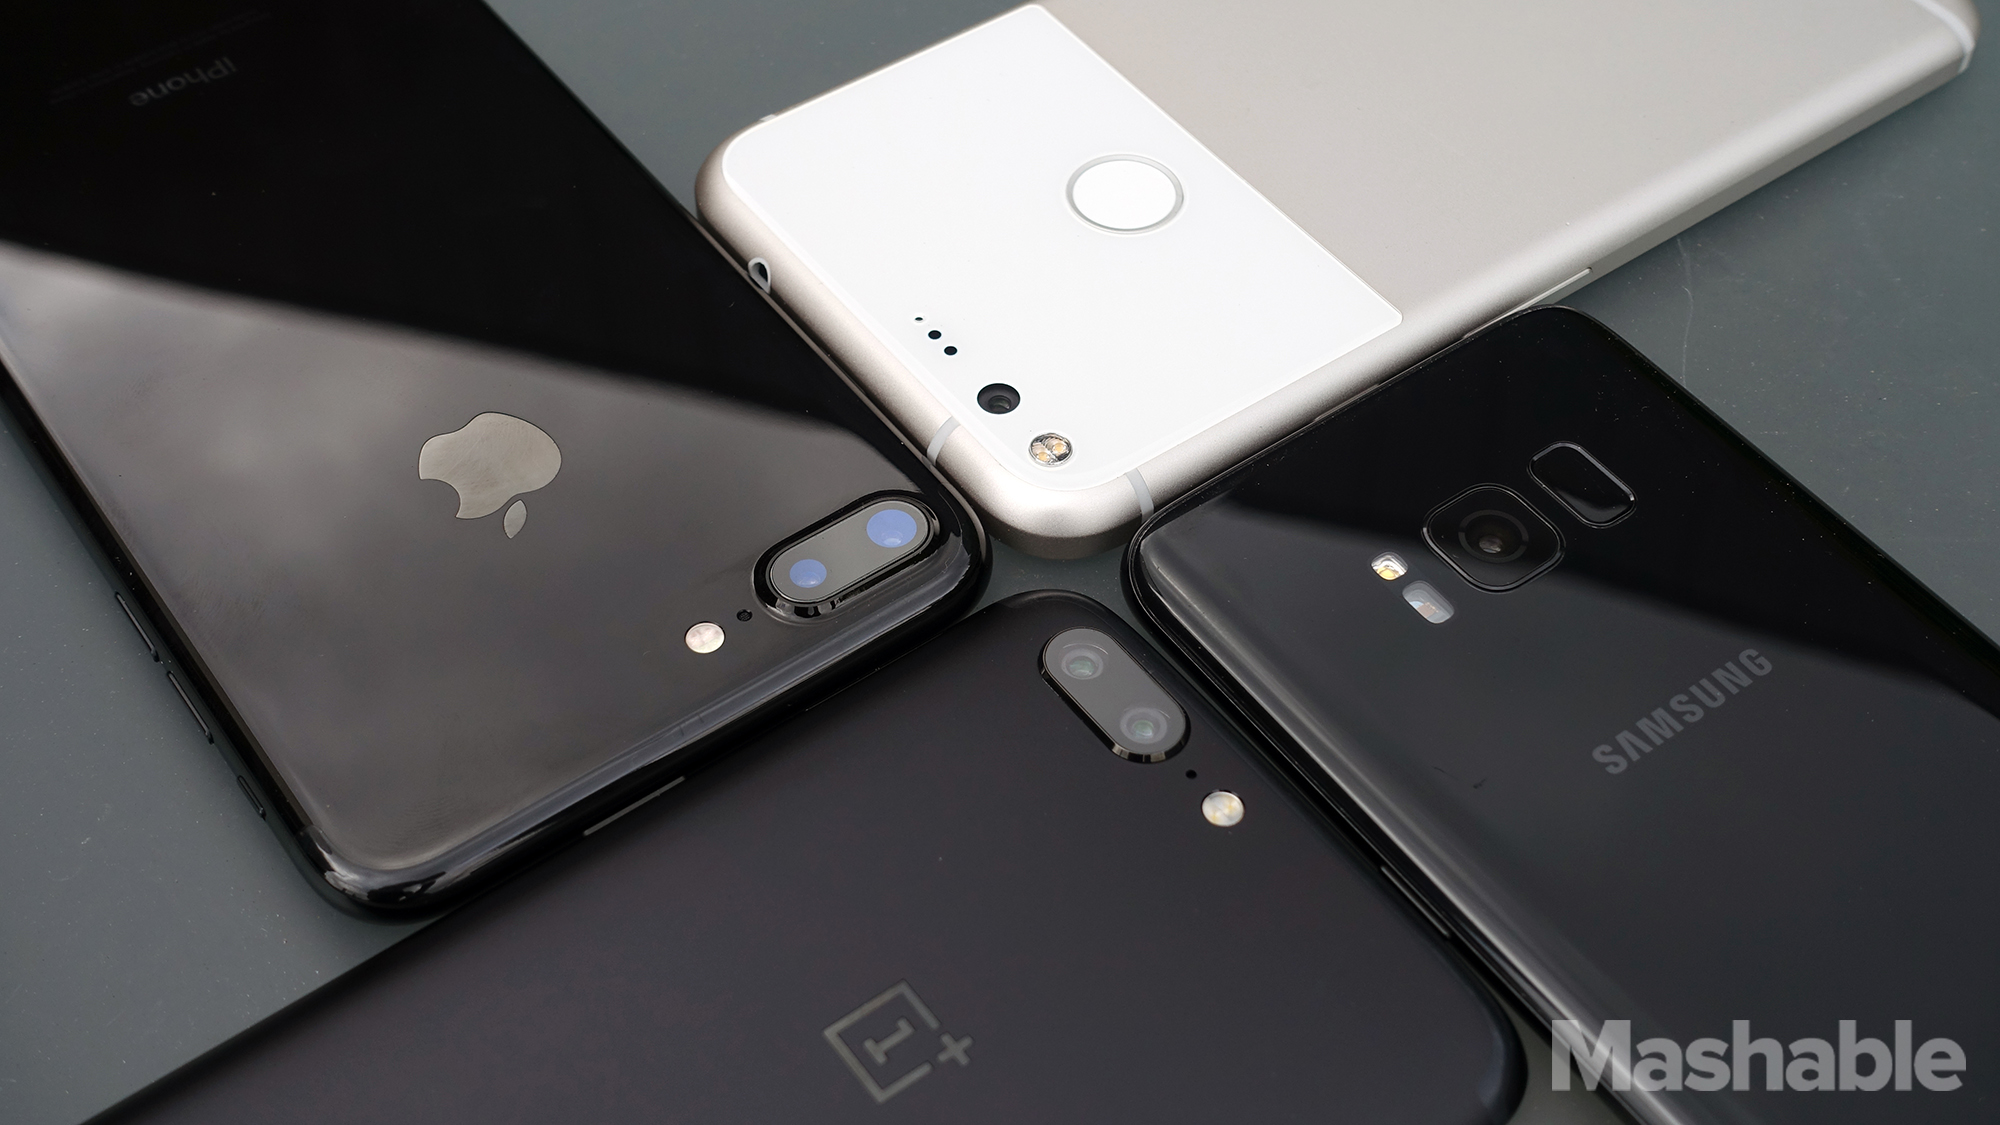 Oneplus 5 Camera V Iphone 7 Plus Google Pixel And Samsung Galaxy S8